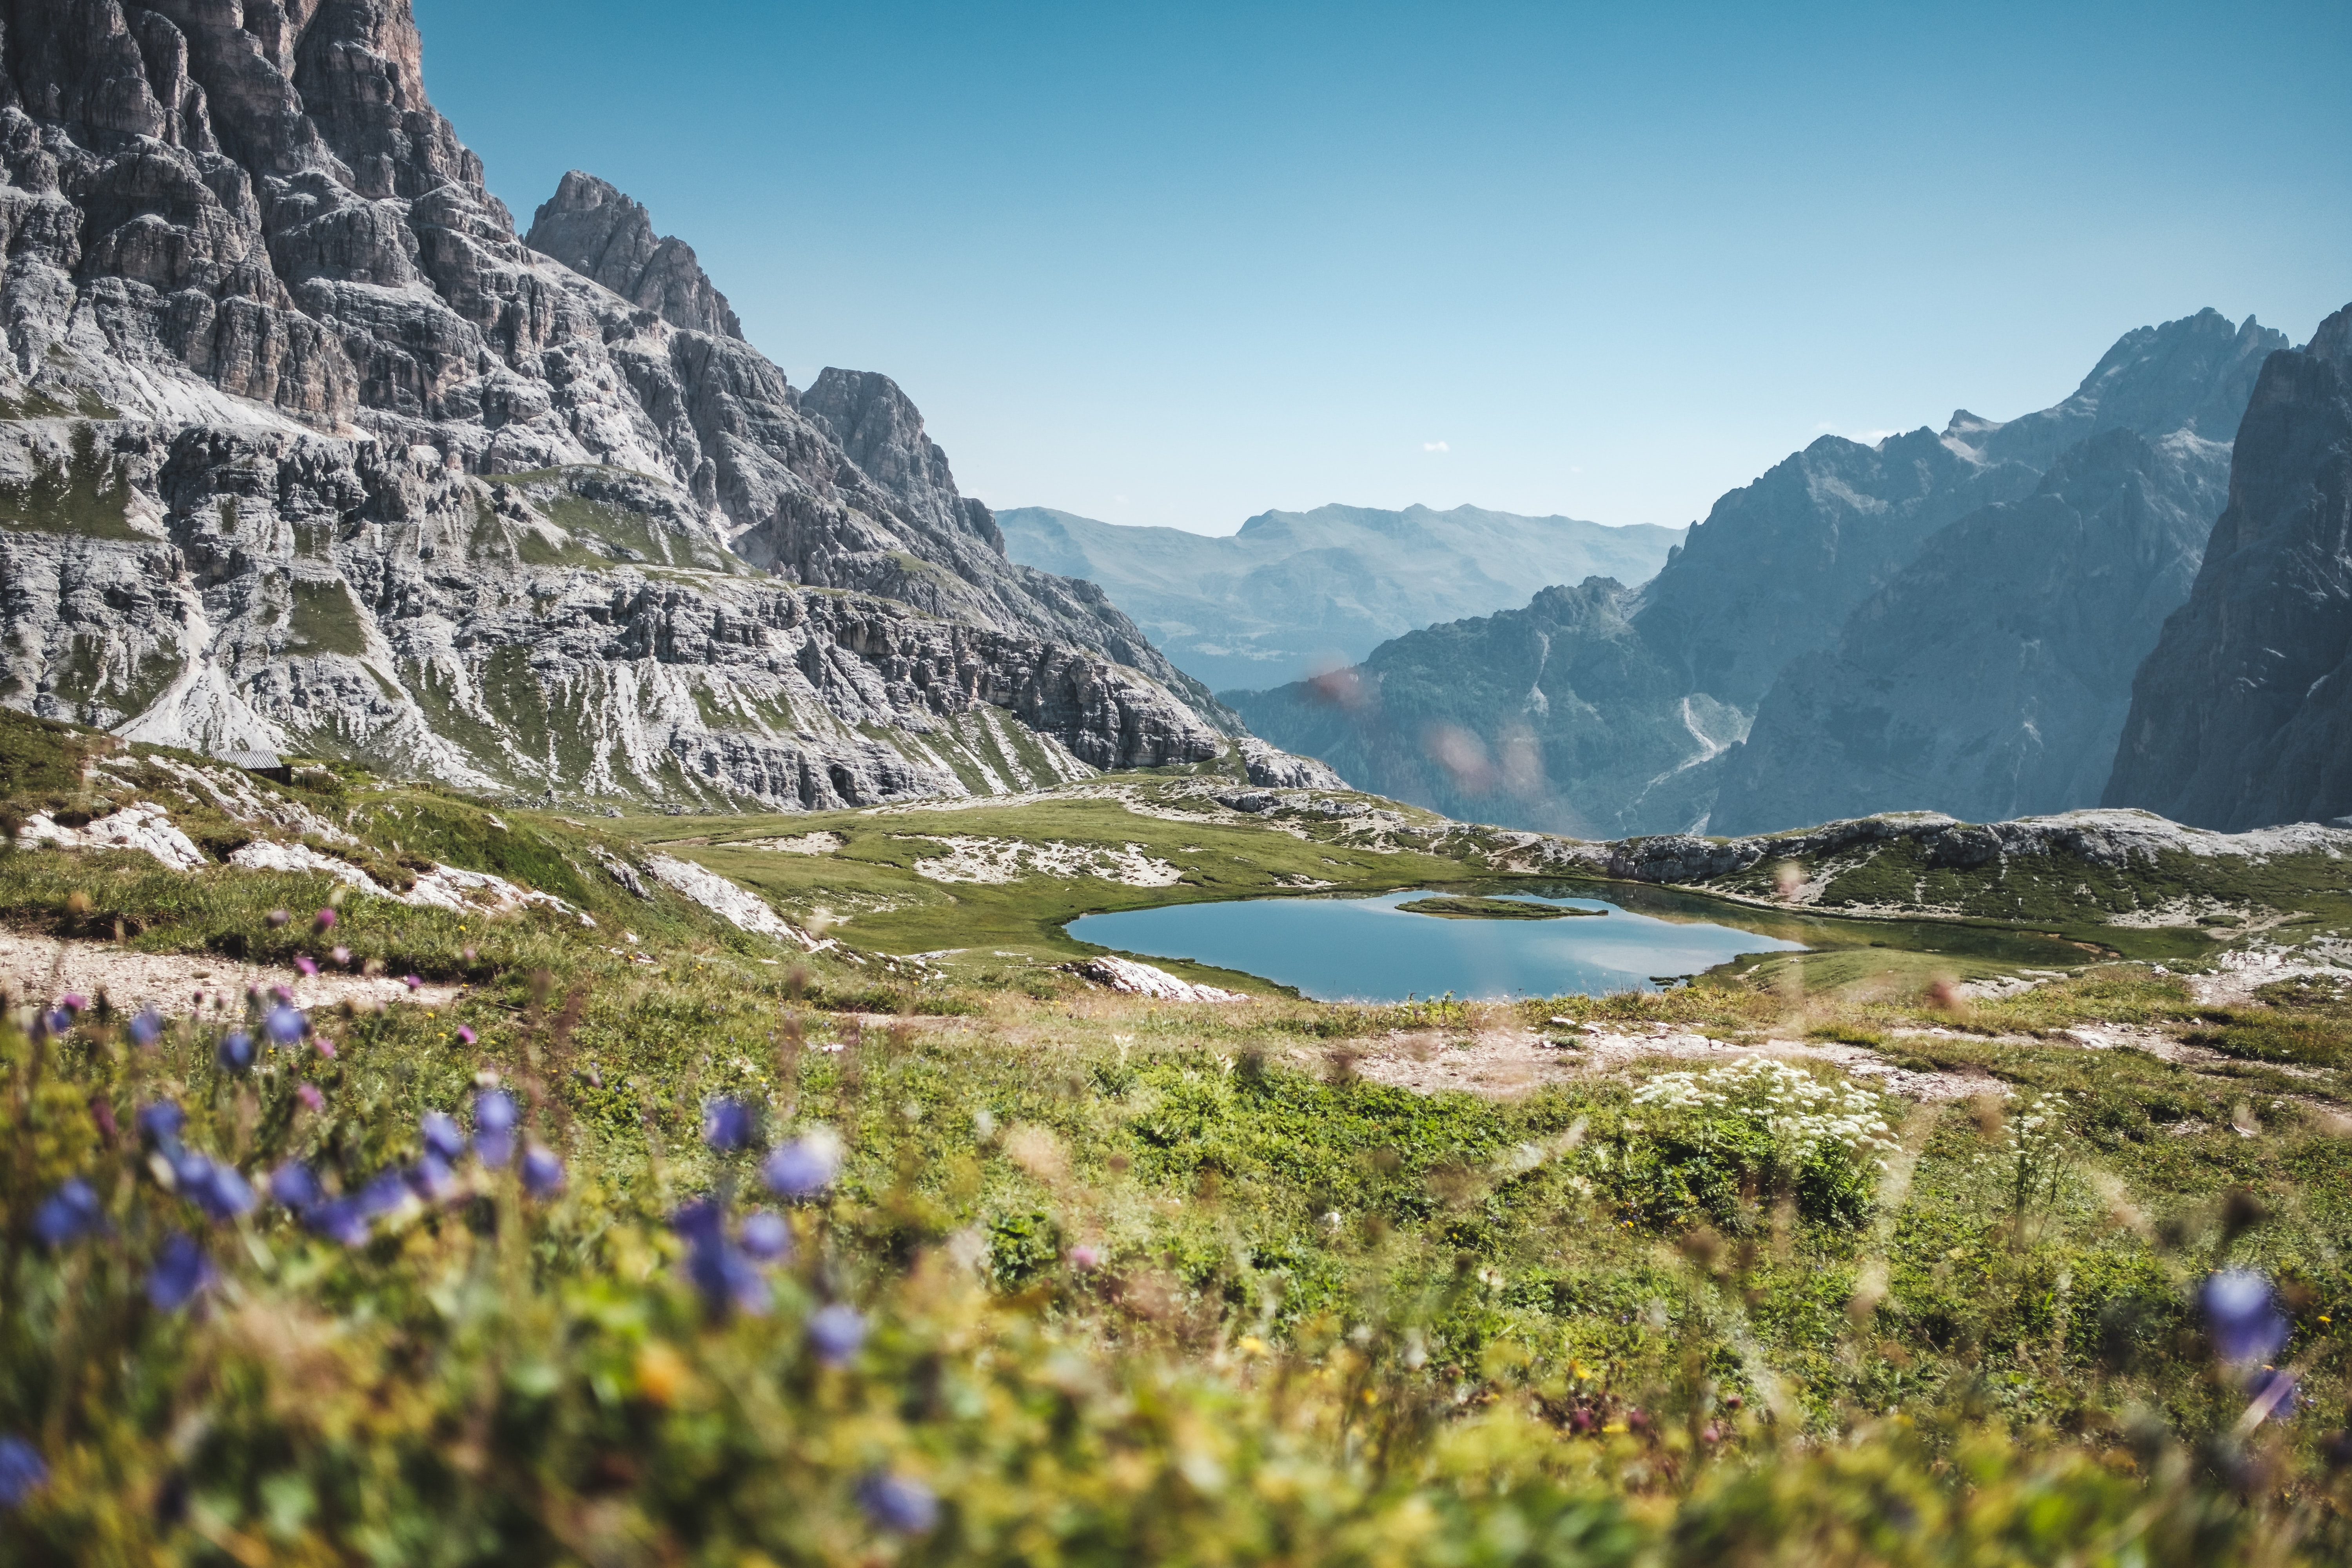 lake surrounded by rocky mountains at daytime